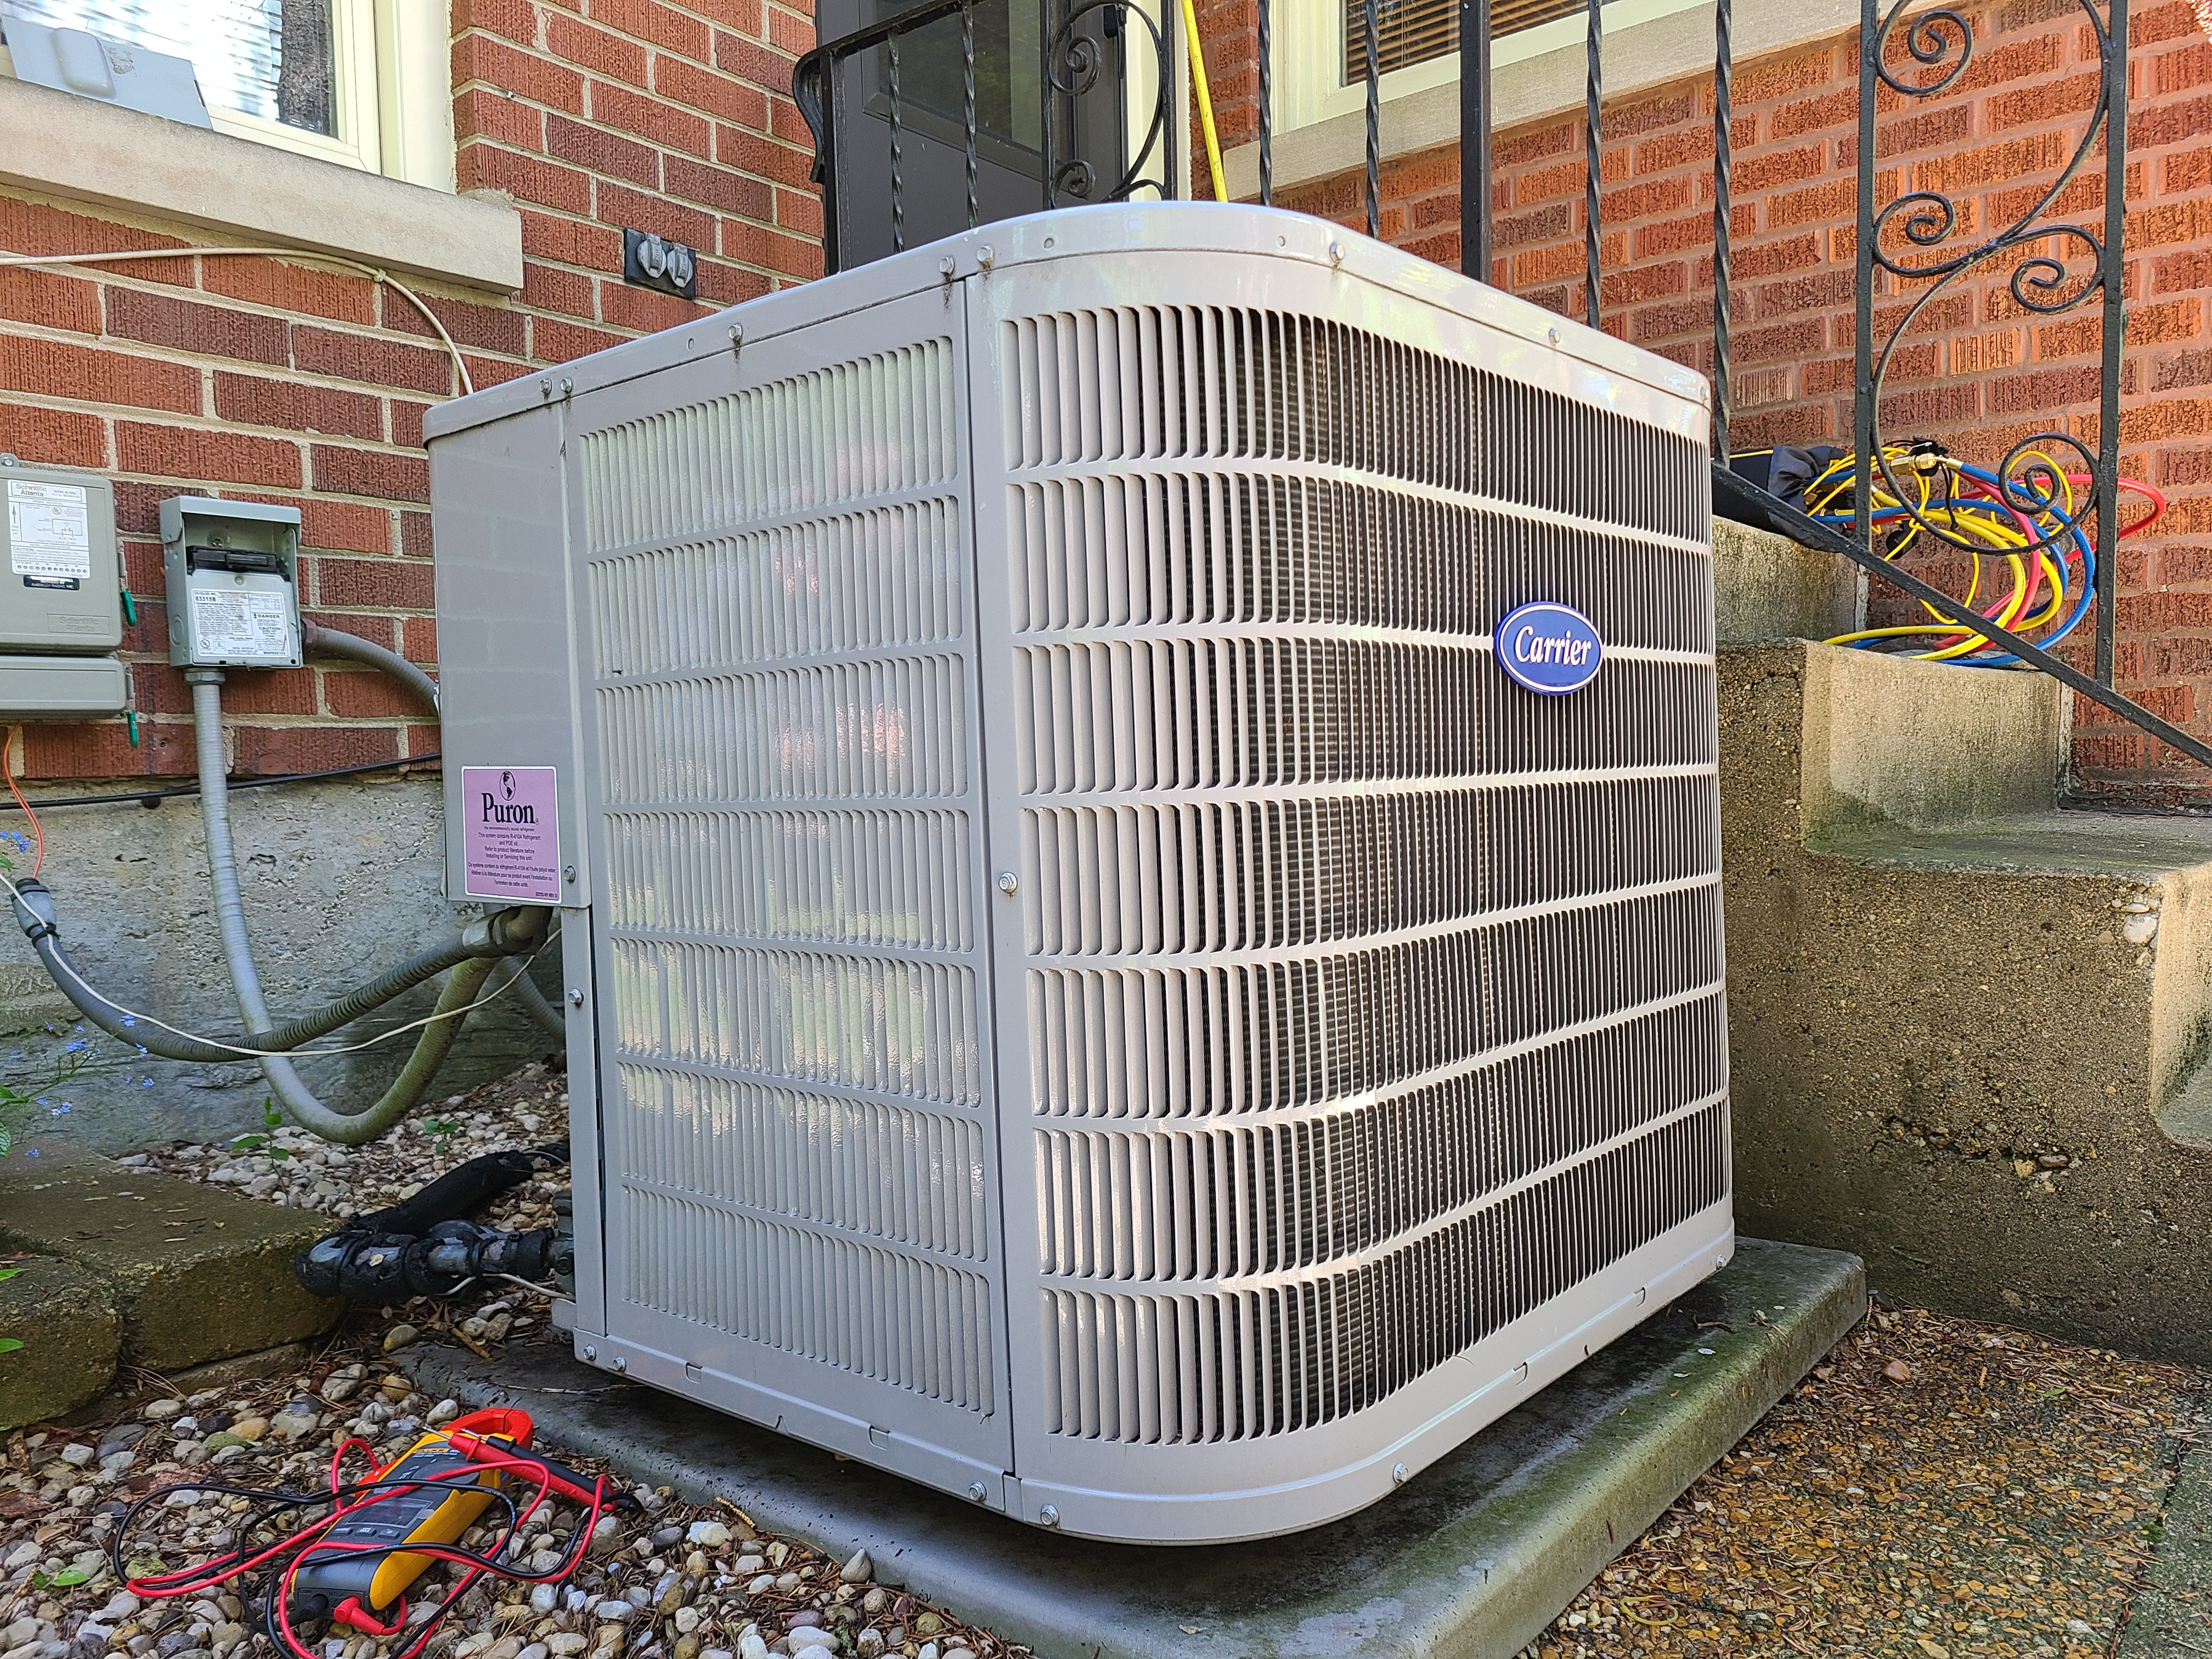 Carrier Condenser restored back to service after CTS